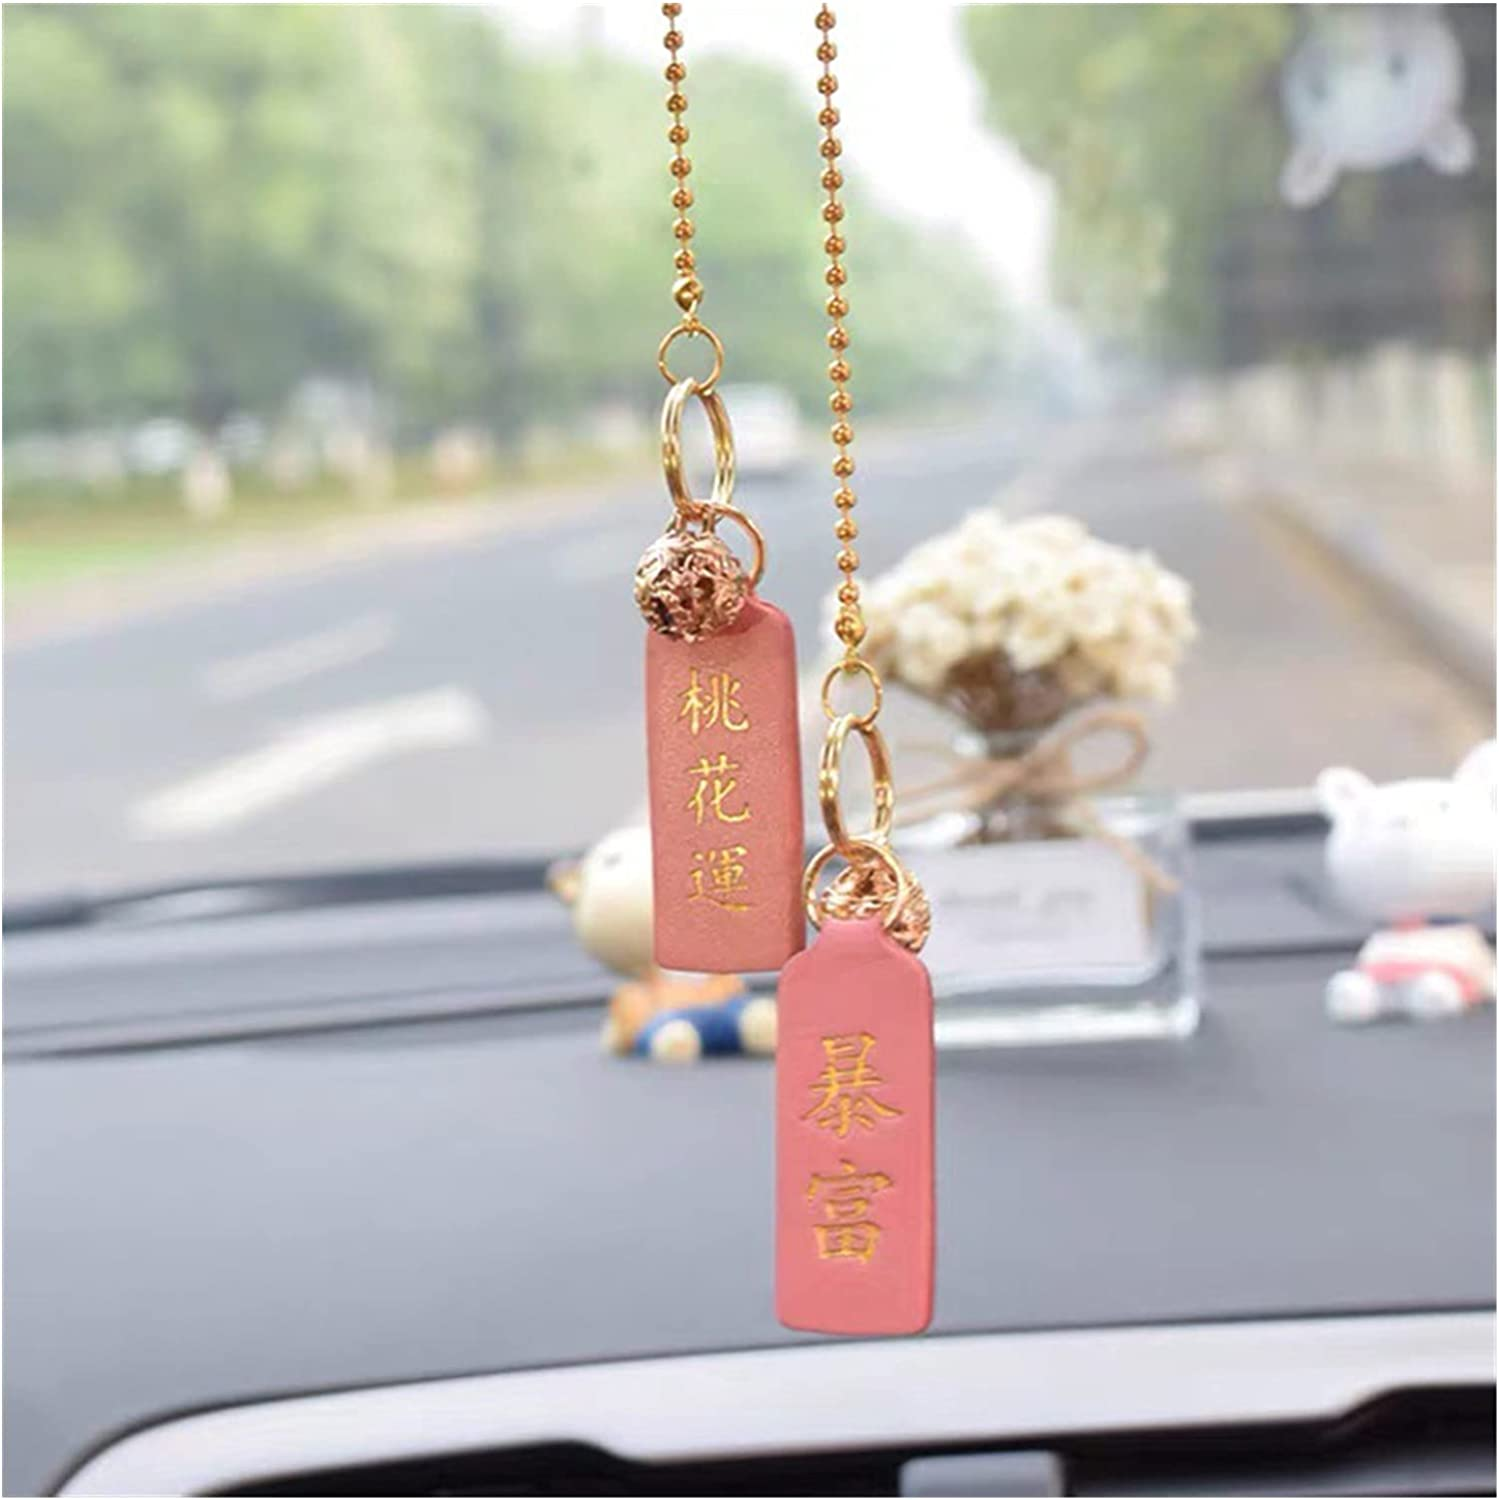 OMING Car Hanging Ornaments Cute 35% OFF Creative and Bells Boston Mall Pendant